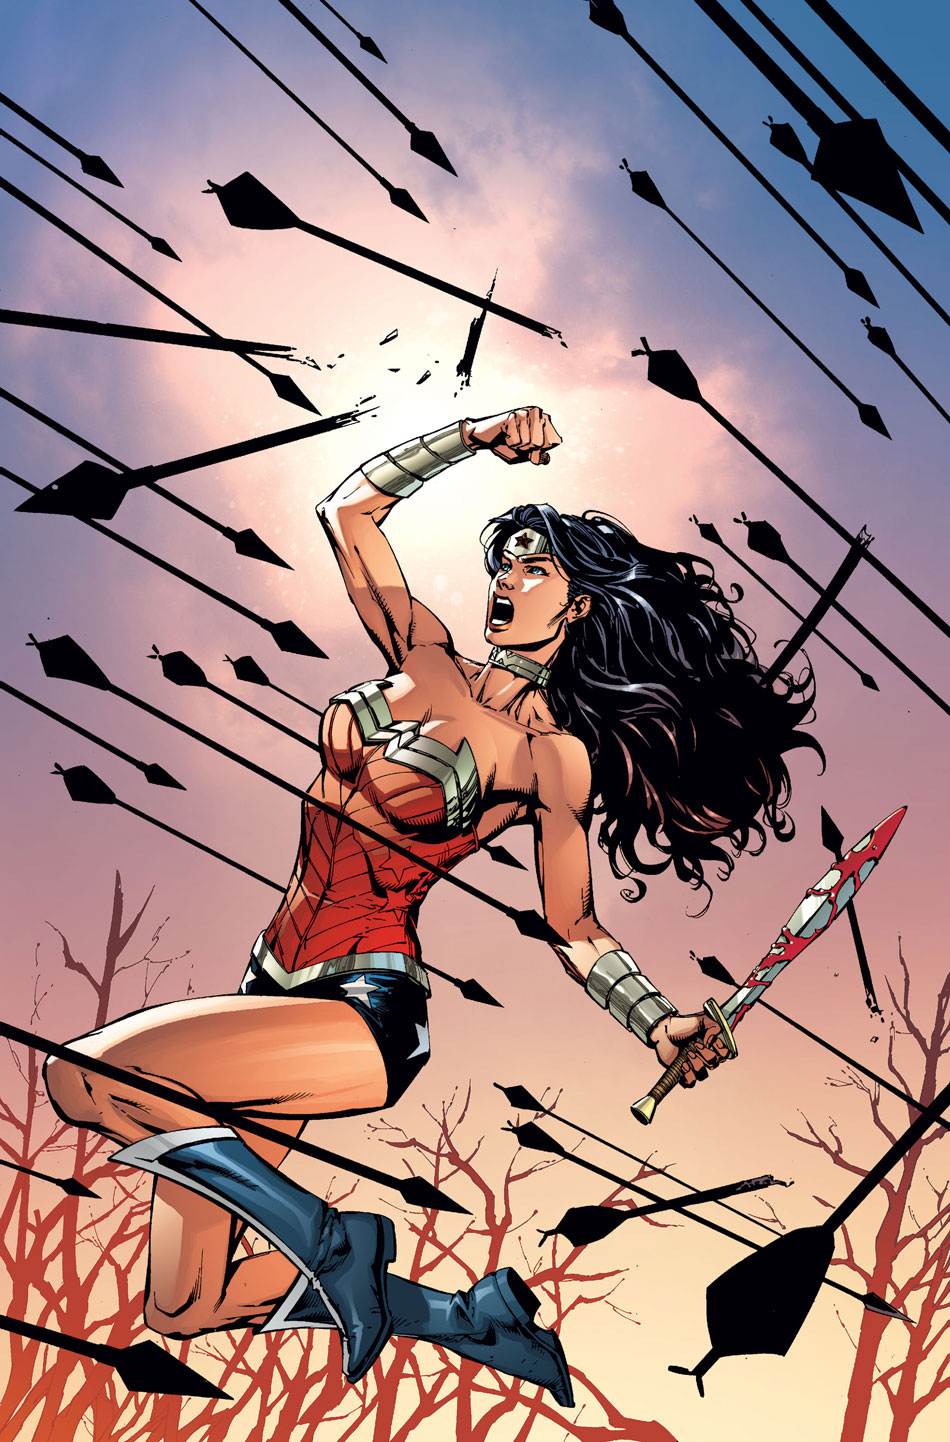 Wonder Woman #52 variant cover by David Finch and Matt Banning